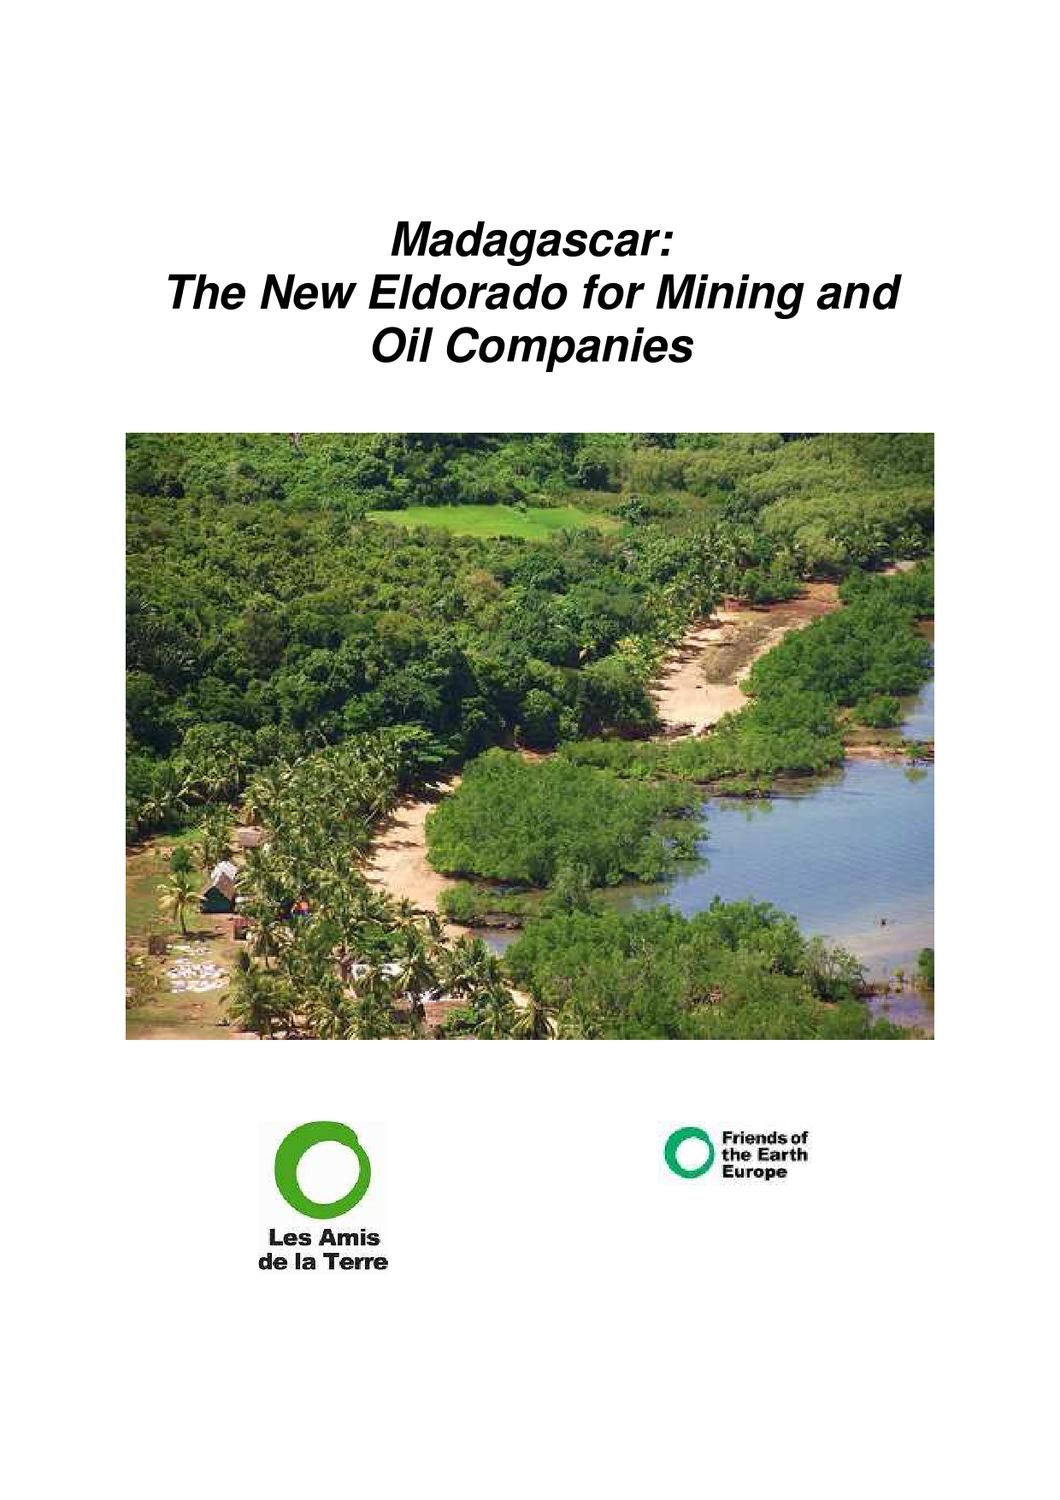 Madagascar: The New Eldorado for Mining and Oil Companies by